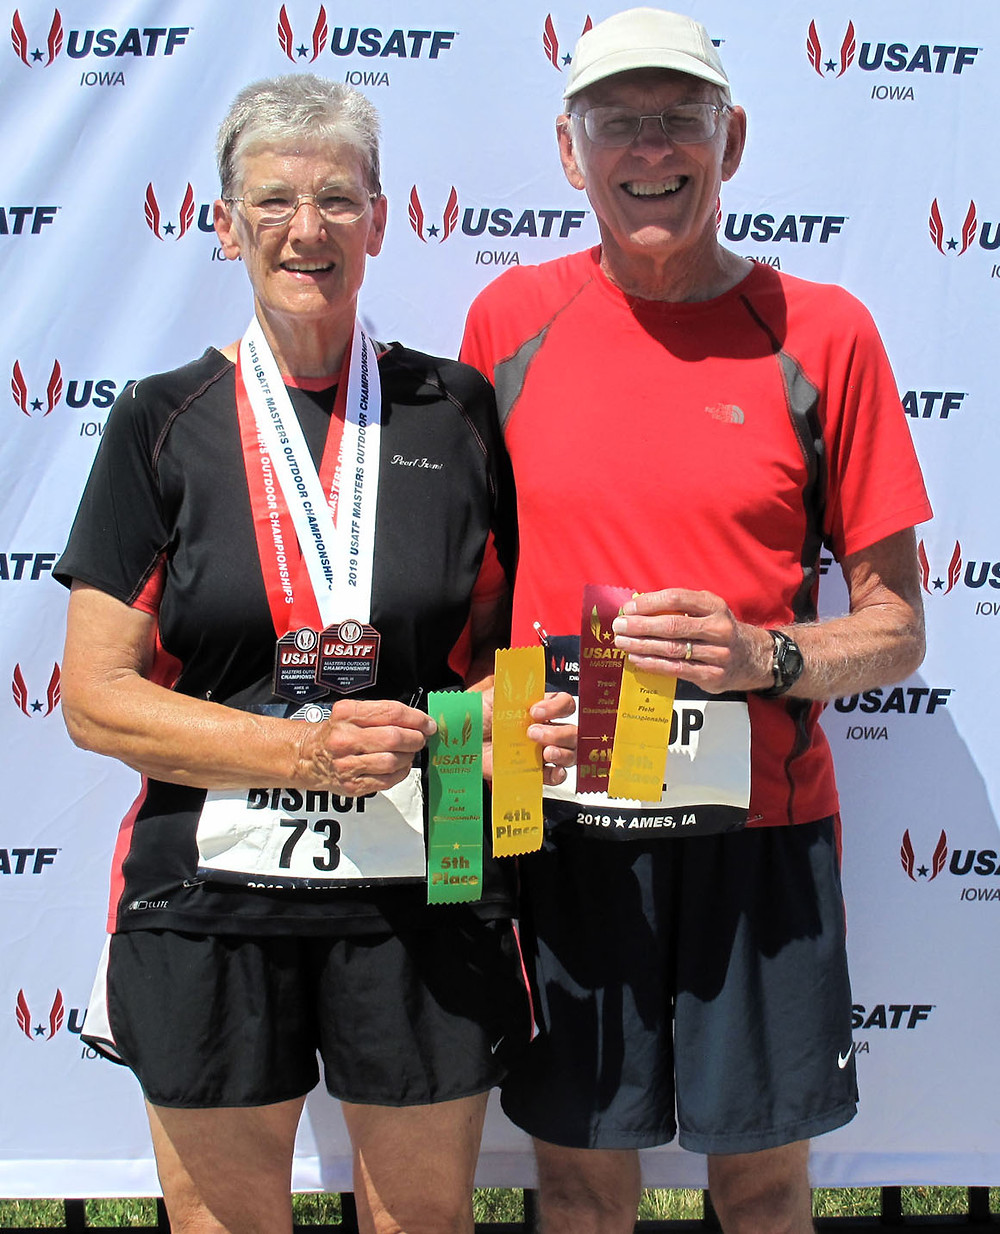 CATHARINE AND CHARLES BISHOP, both of Versailles, brought plenty of ribbons home from the USATF Masters Outdoor Championships in Ames, Iowa. Catharine also earned a pair of medals— a silver in the 200-meter dash and a bronze in the triple jump. (Photo submitted)